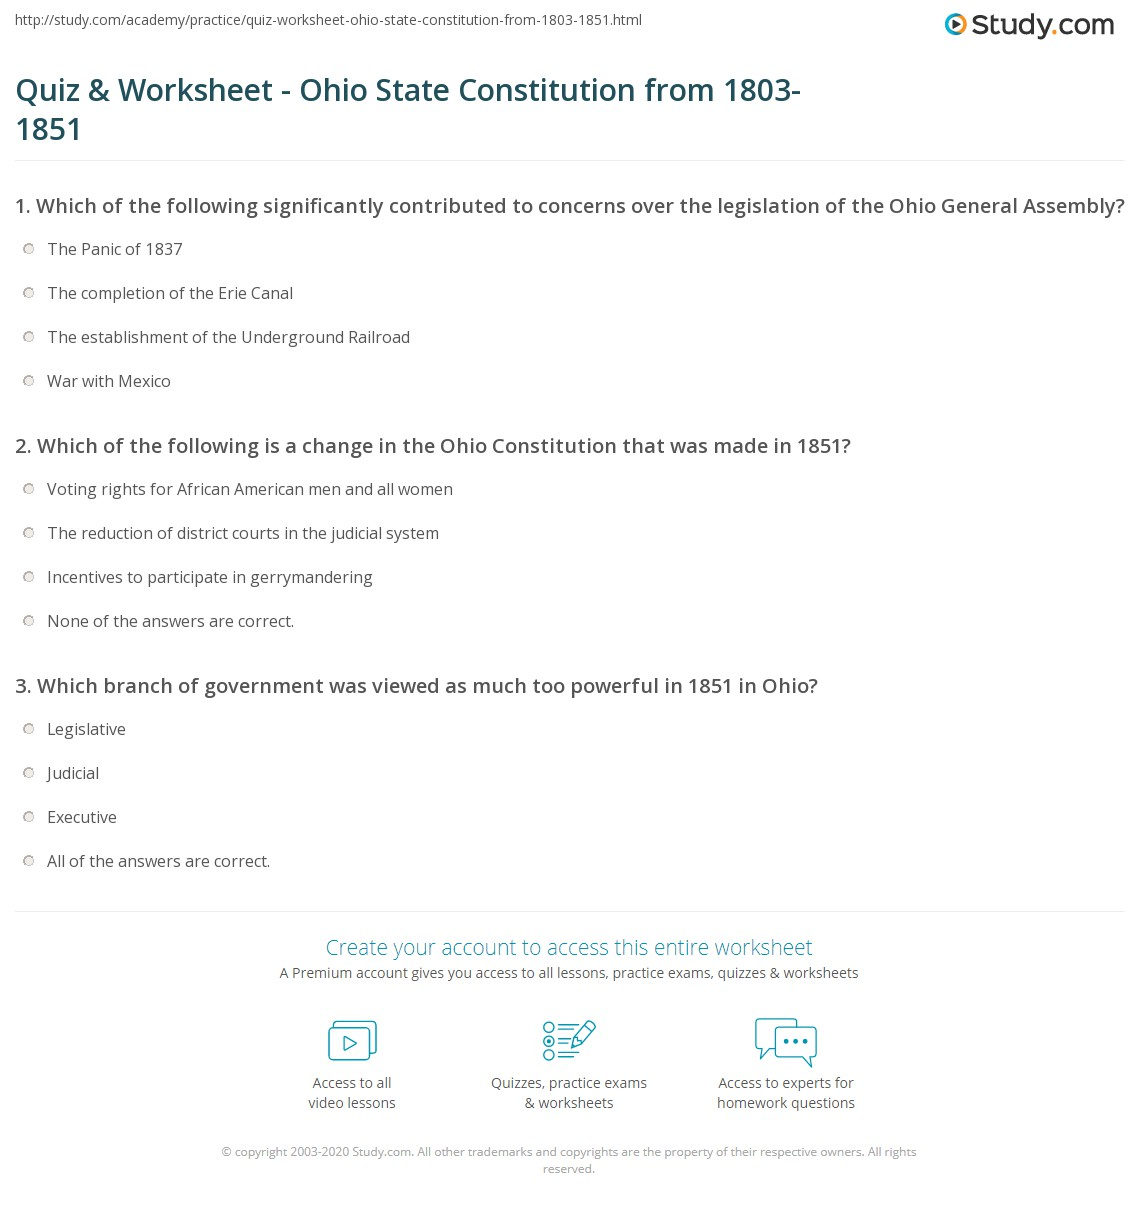 Quiz W Ksheet Ohio St Te C Stituti From 1803 1851 Study